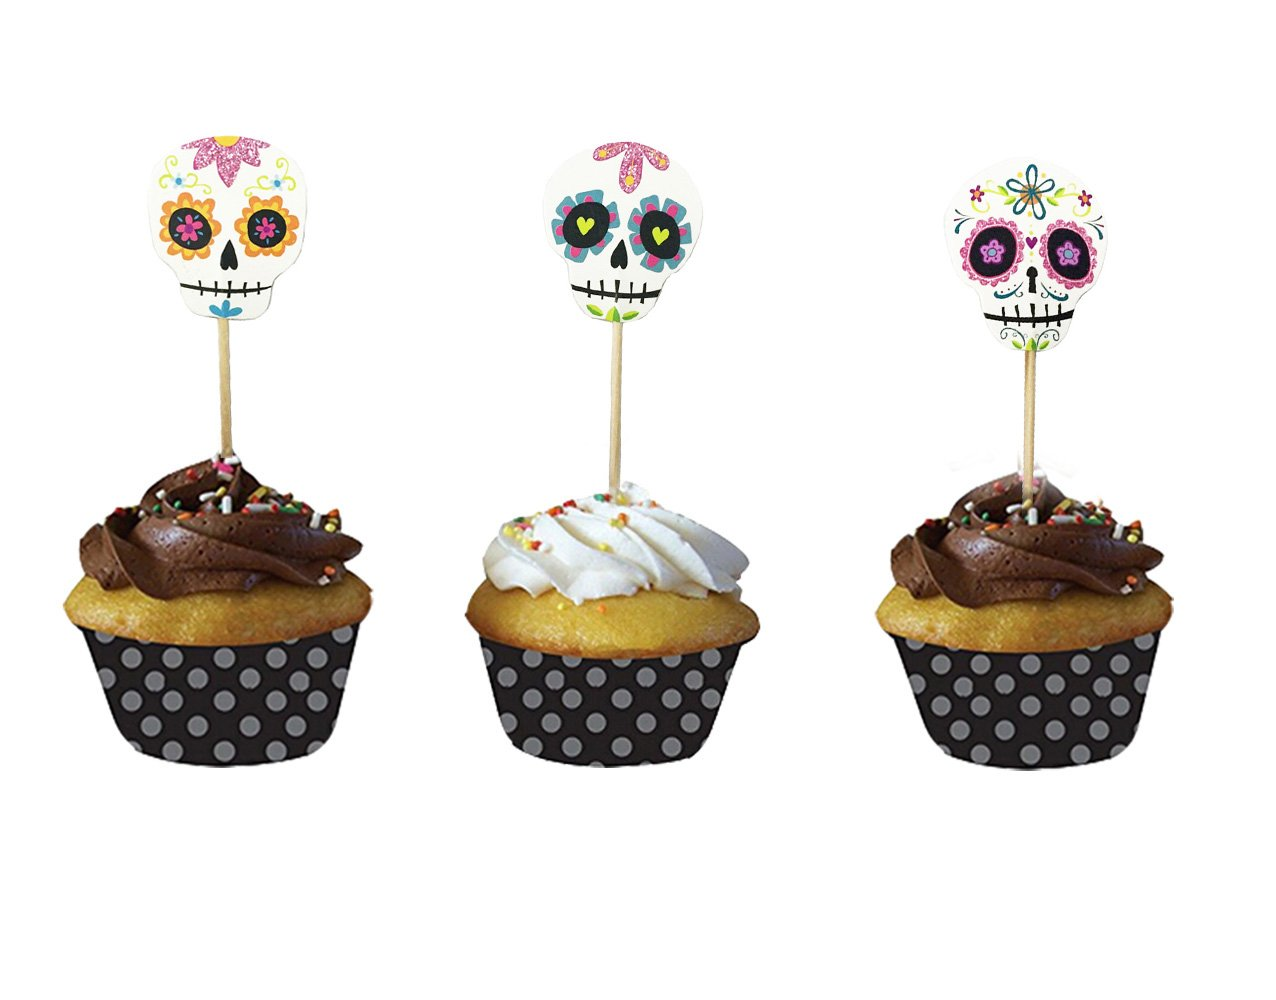 Halloween Cupcake Muffin Toppers Skeleton Design, 36 Pcs, Mixed Packaging by PARTYMASTER PM-PICK-005